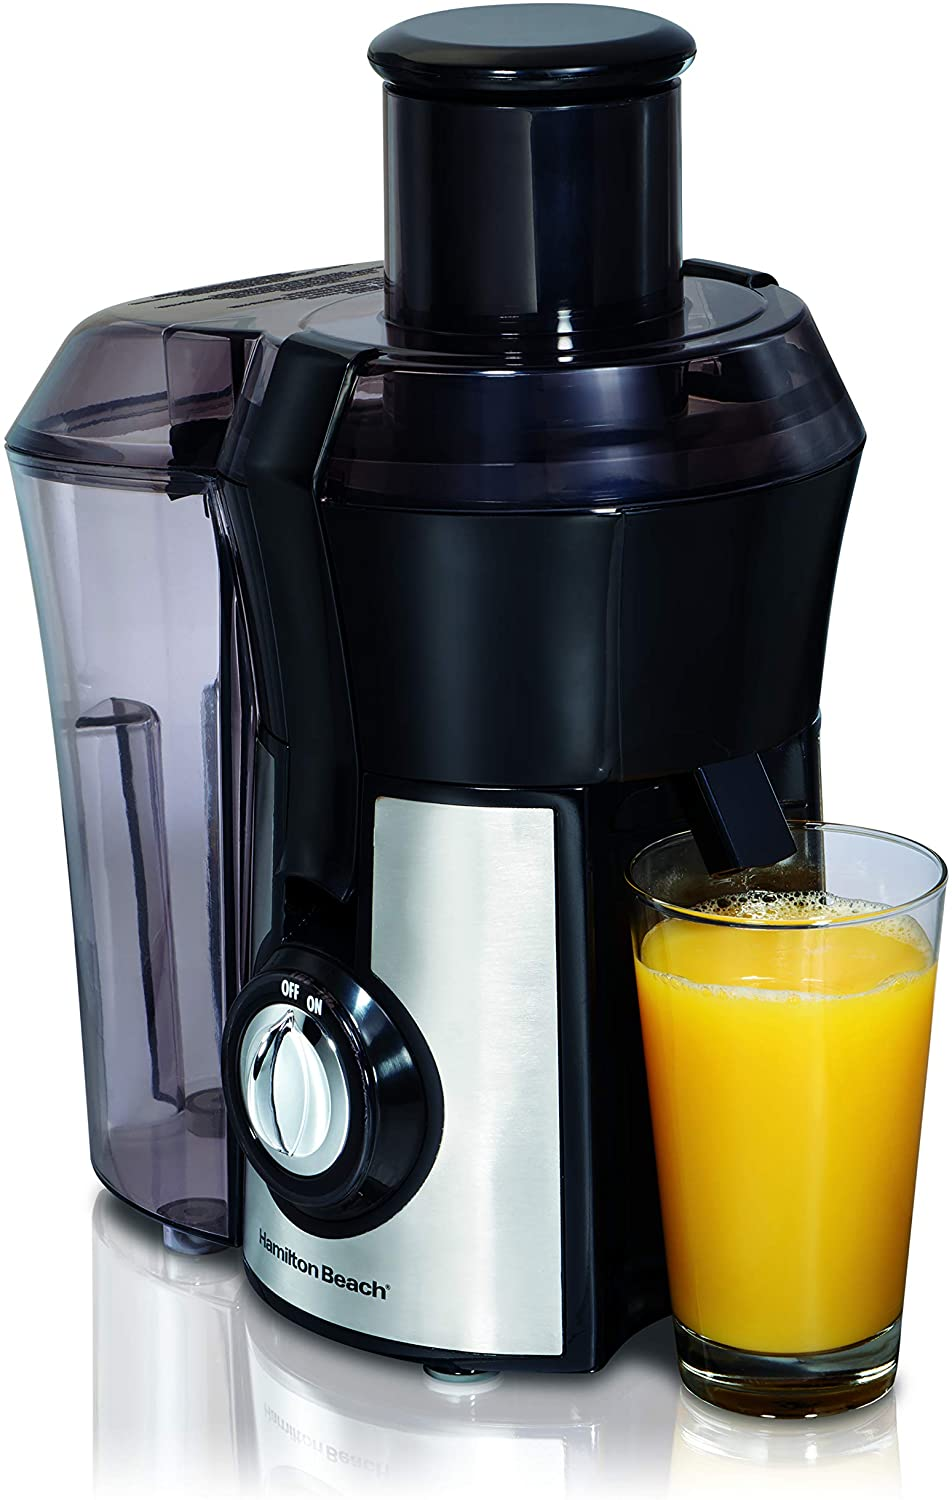 Hamilton Beach Pro Juicer Machine, Big Mouth Large 3 Feedchute, Easy to Clean, Centrifugal, BPA Free, 800W 67608A , Silver